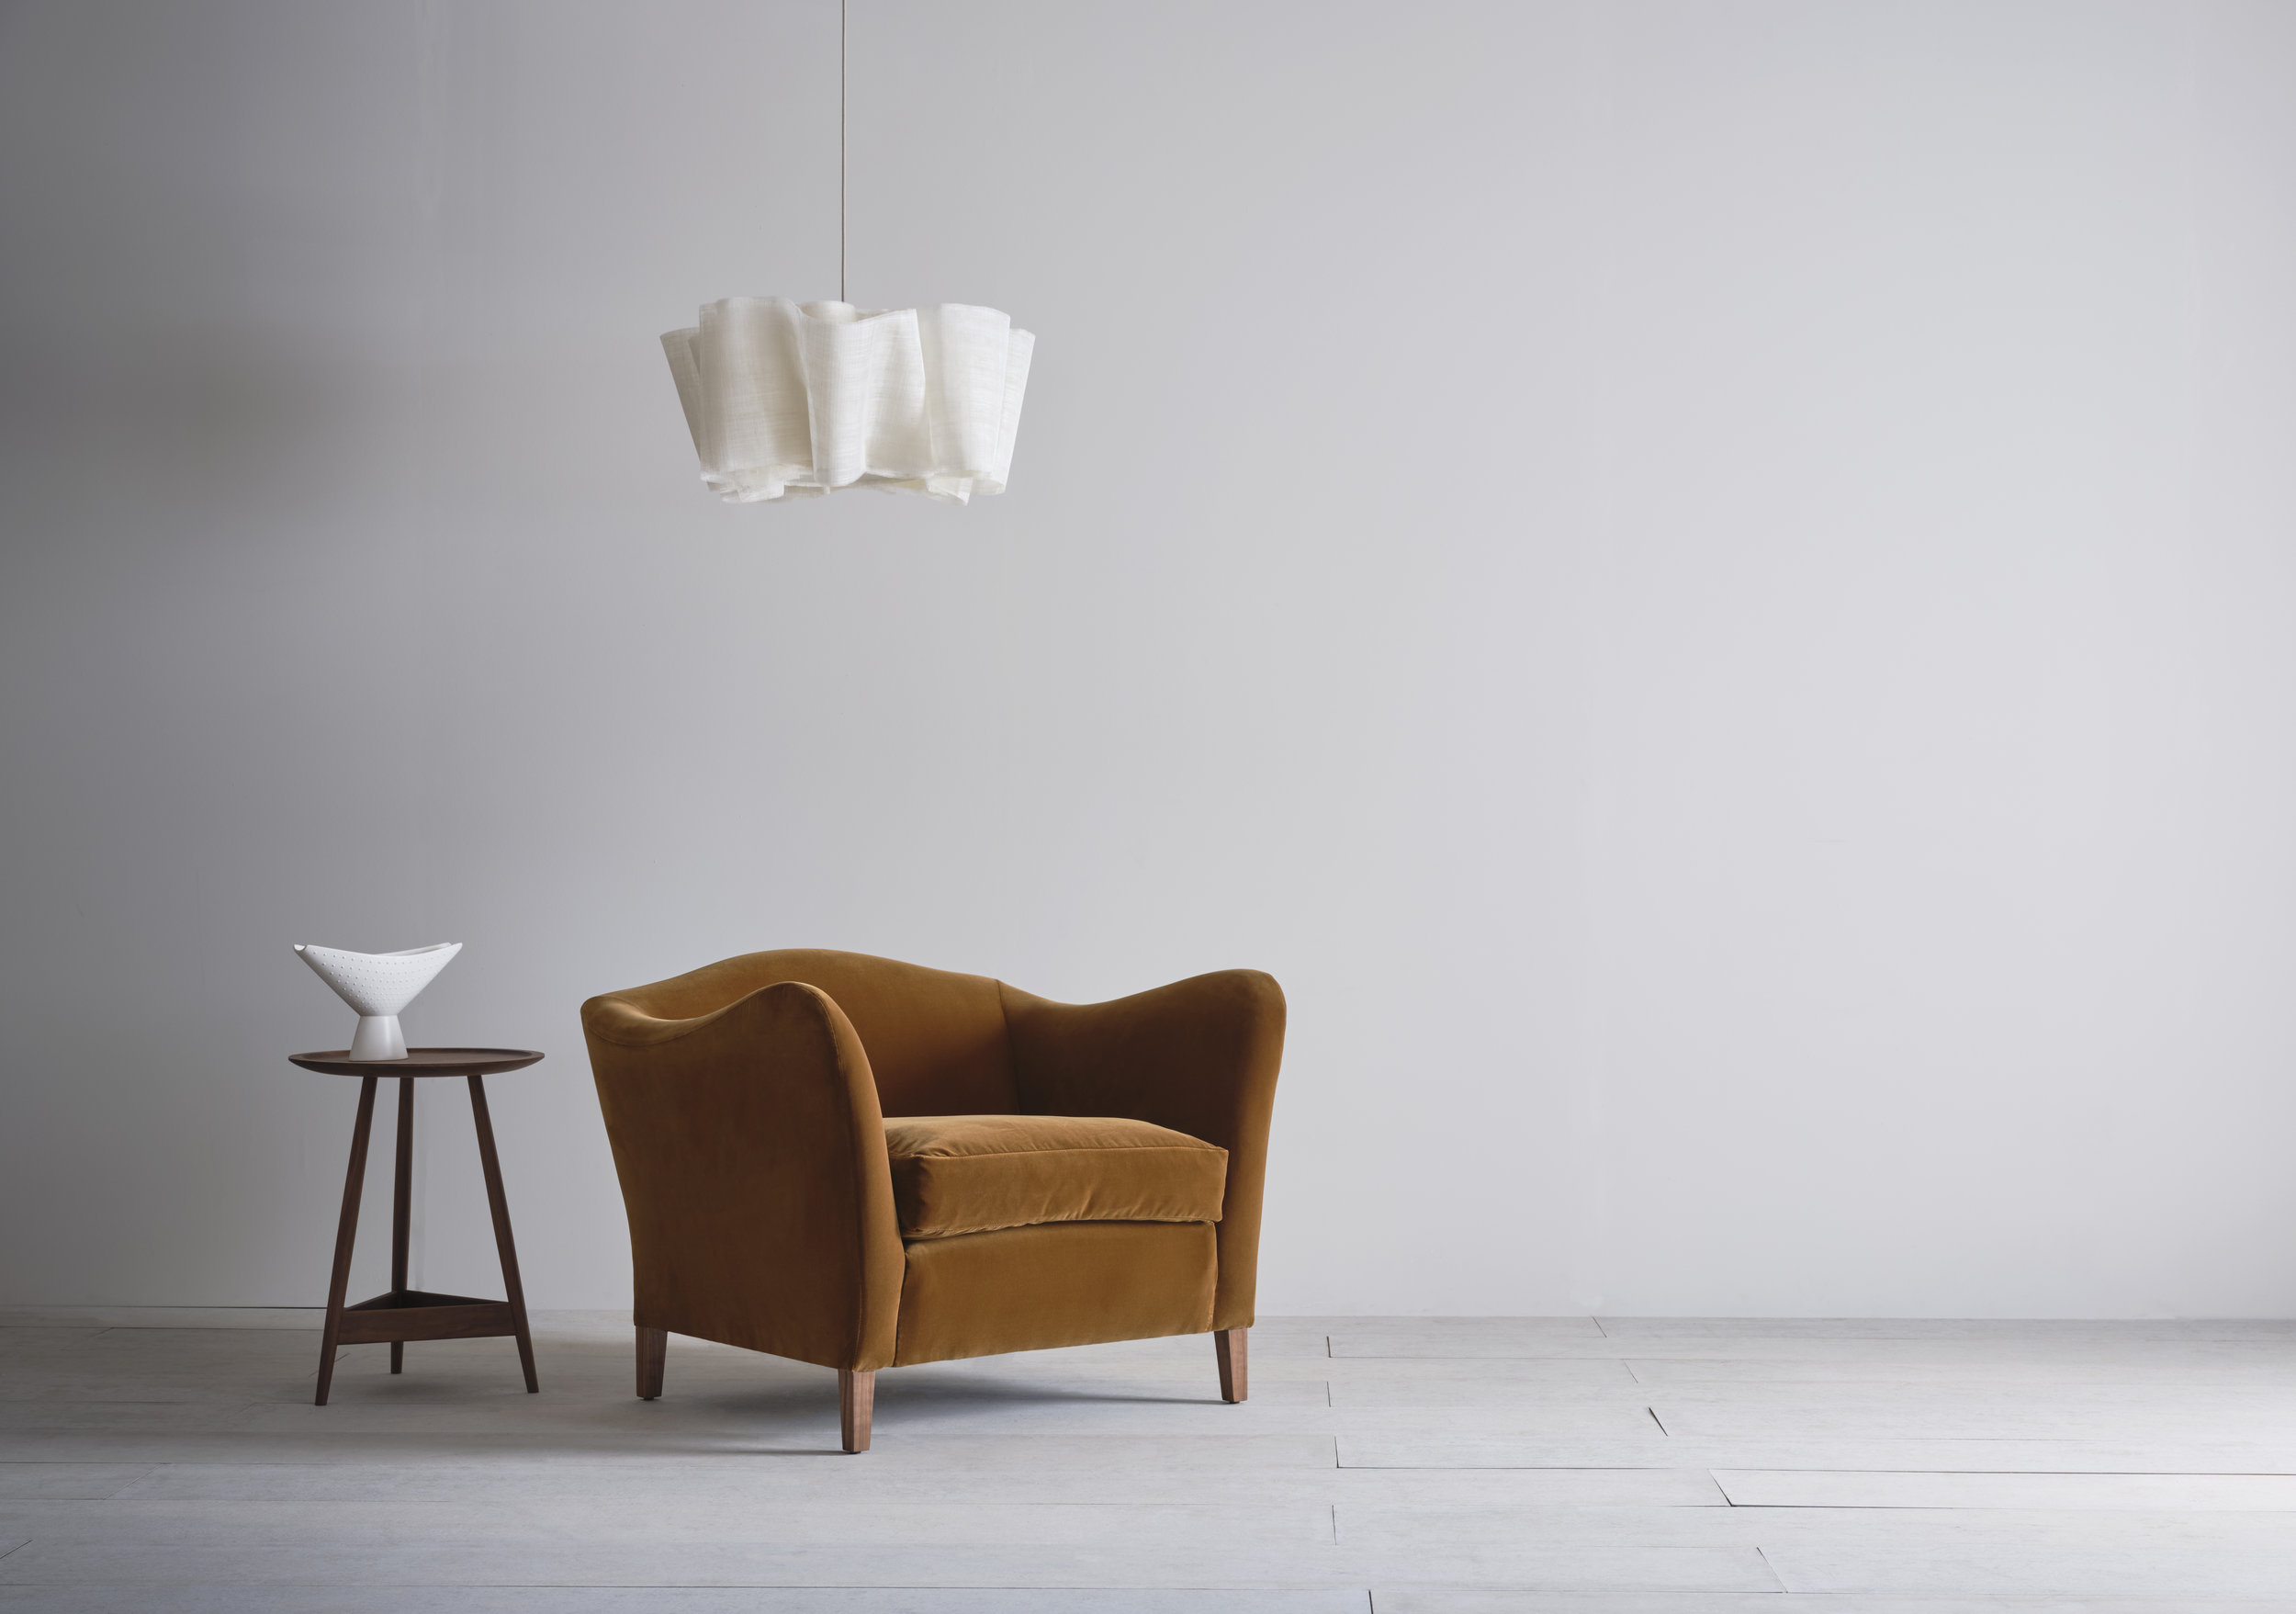 Image credit: The Moreau Armchair, PINCH.